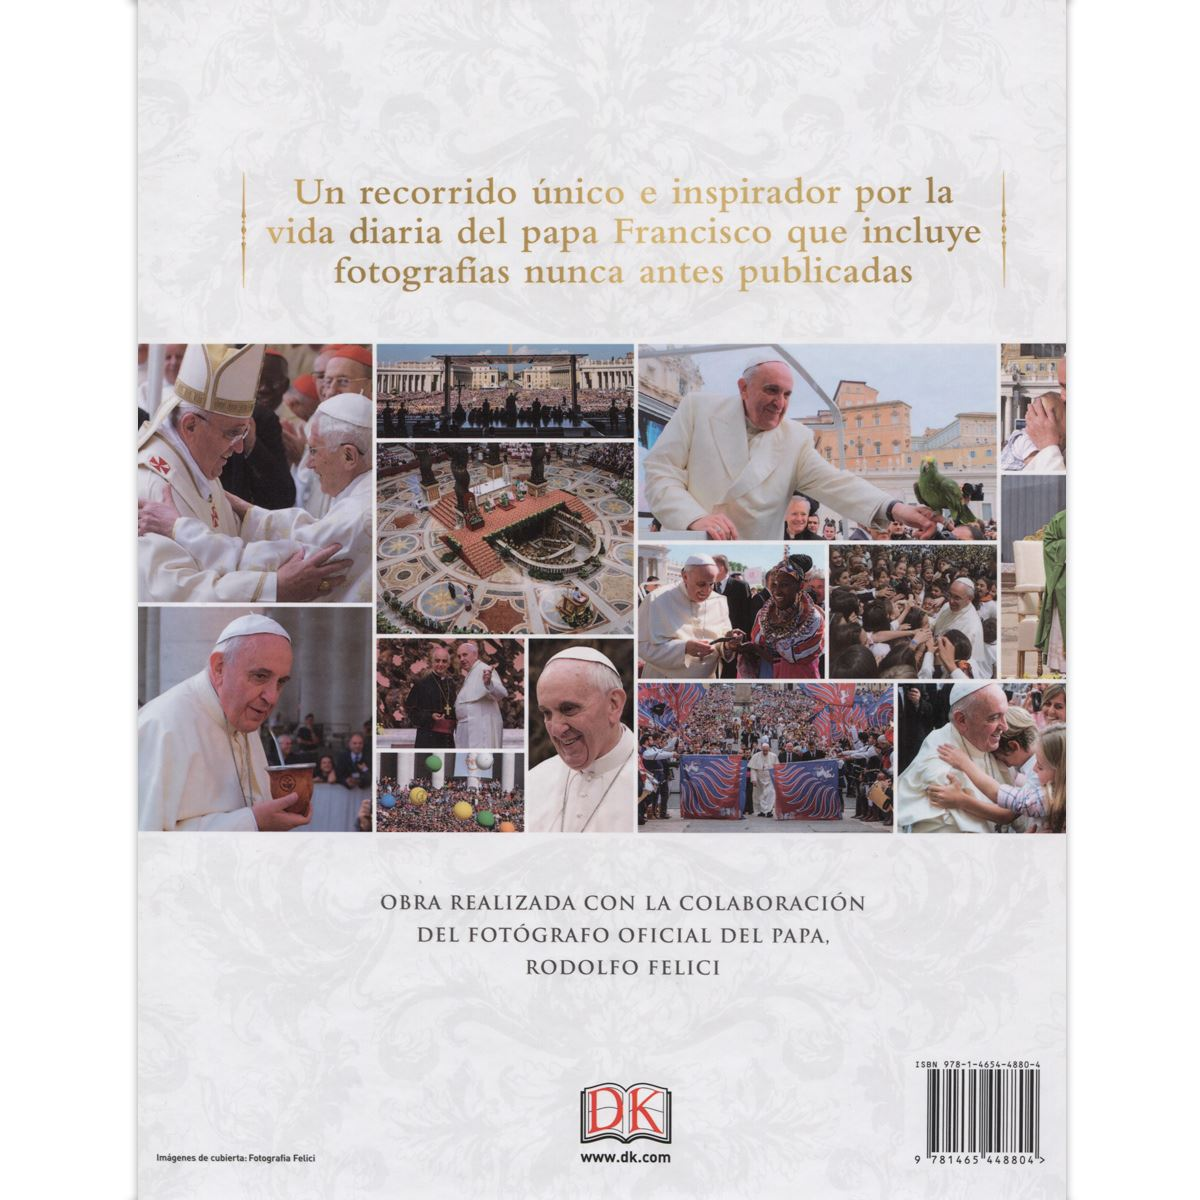 El papa francisco Libro - Sanborns